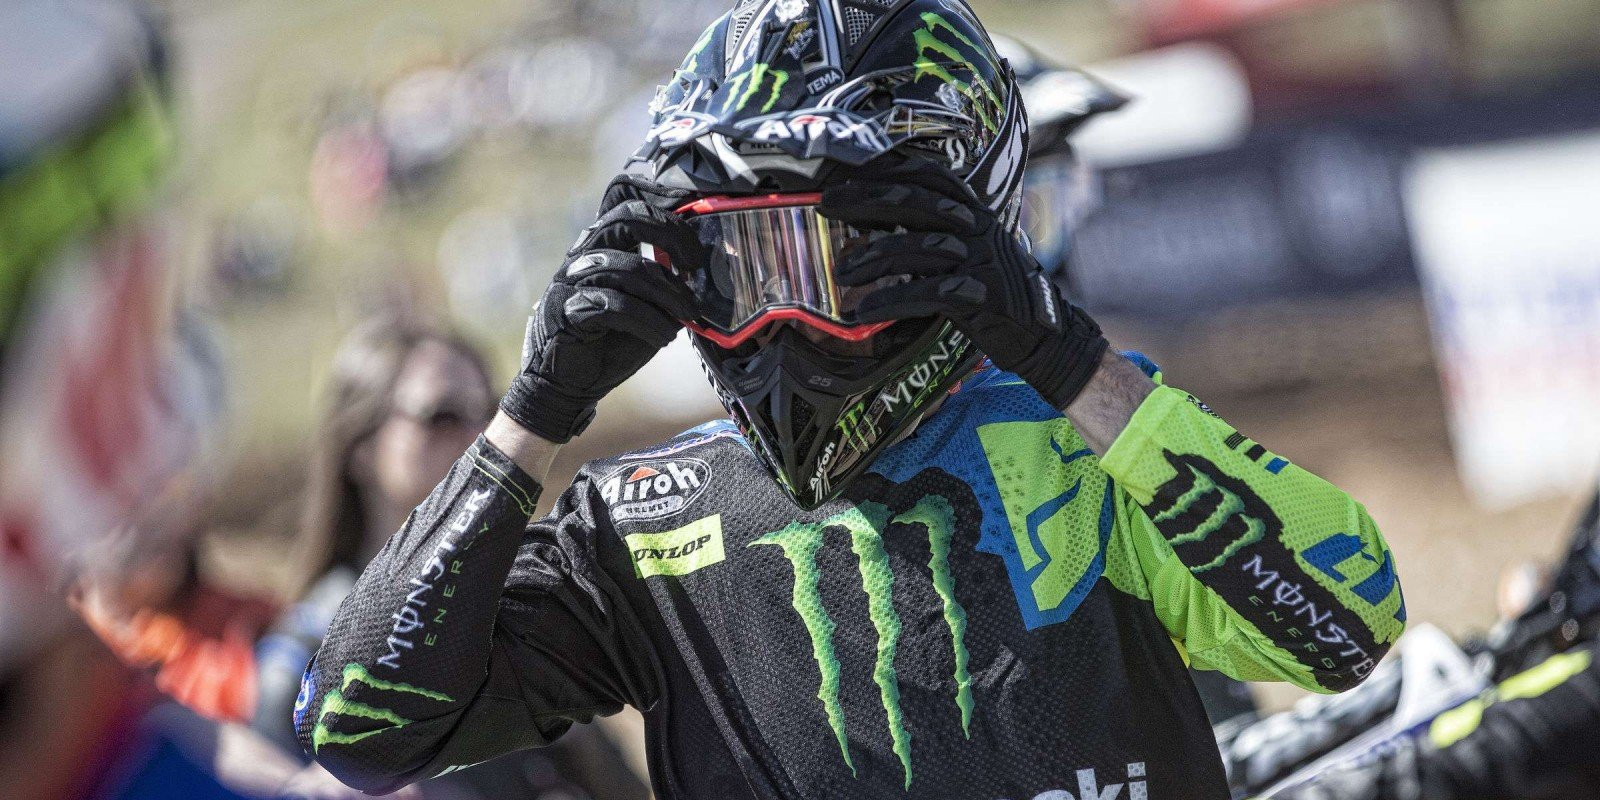 Clement Desalle at the 2017 Grand Prix of Latvia